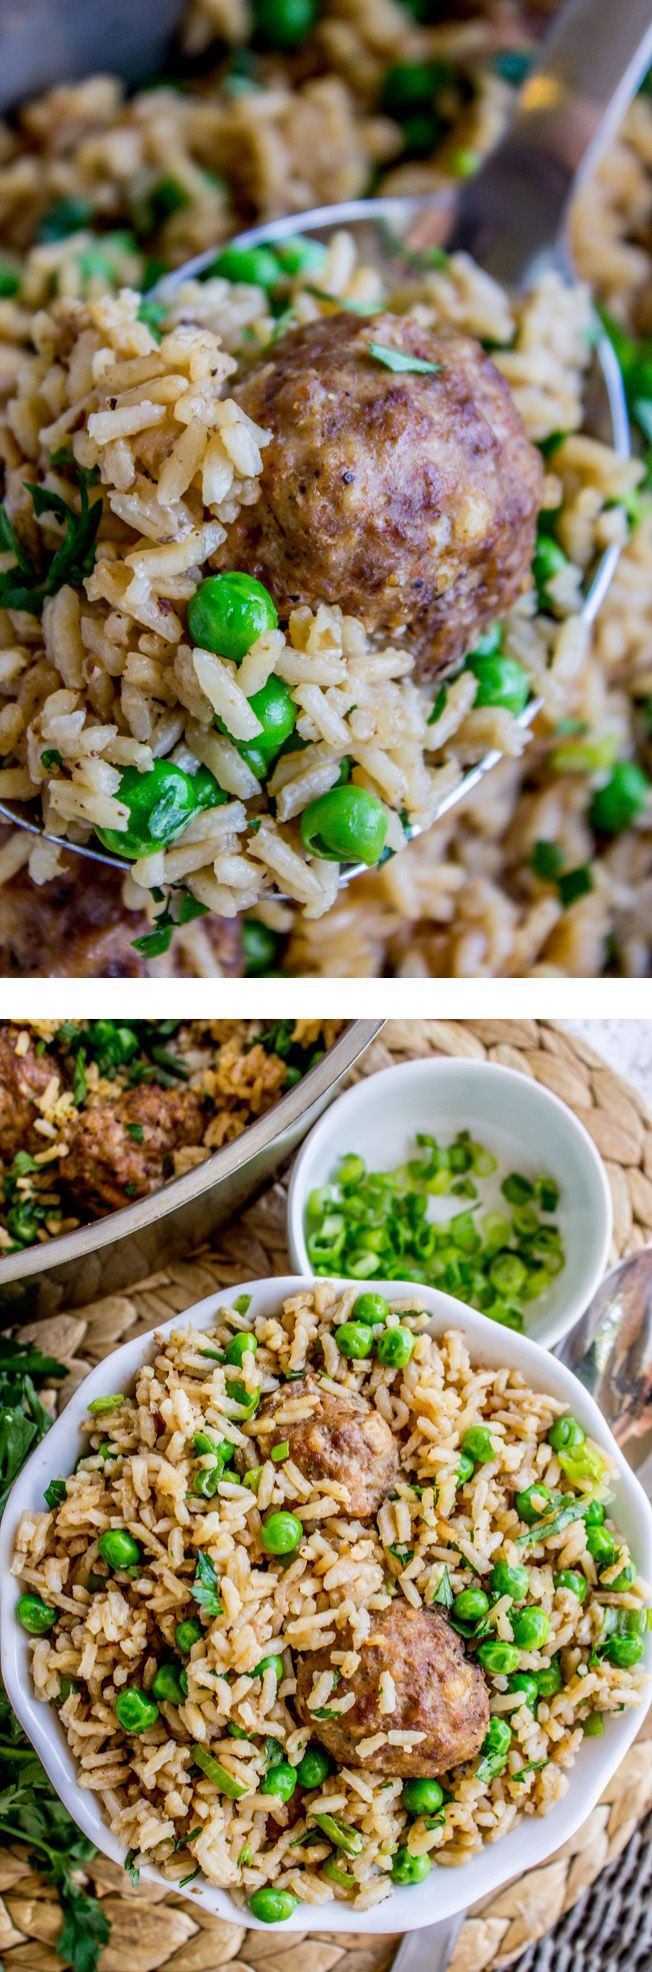 One Skillet Beef Meatballs With Rice And Peas Recipe From The Food Charlatan Say Hello To Your New Favorite 30 Minute Meal This Easy Pea Recipes Recipes Food